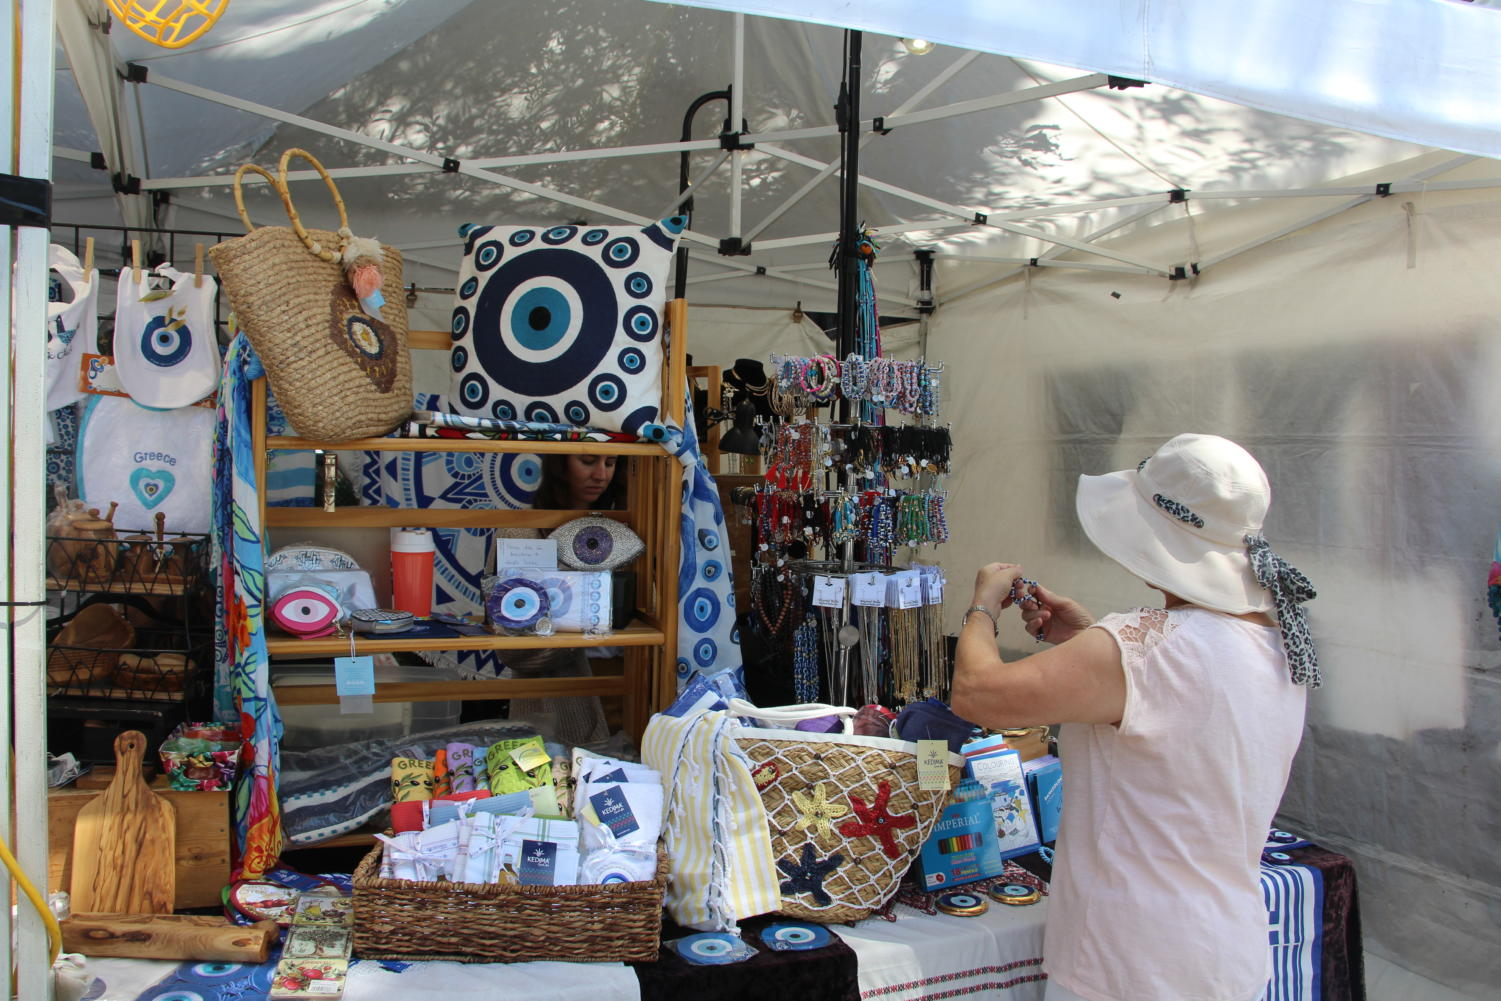 A+visitor+observes+a+bracelet+for+sale+at+the+Beyond+Bella+booth%2C+a+place+that+sells+Greek+cultural+items.